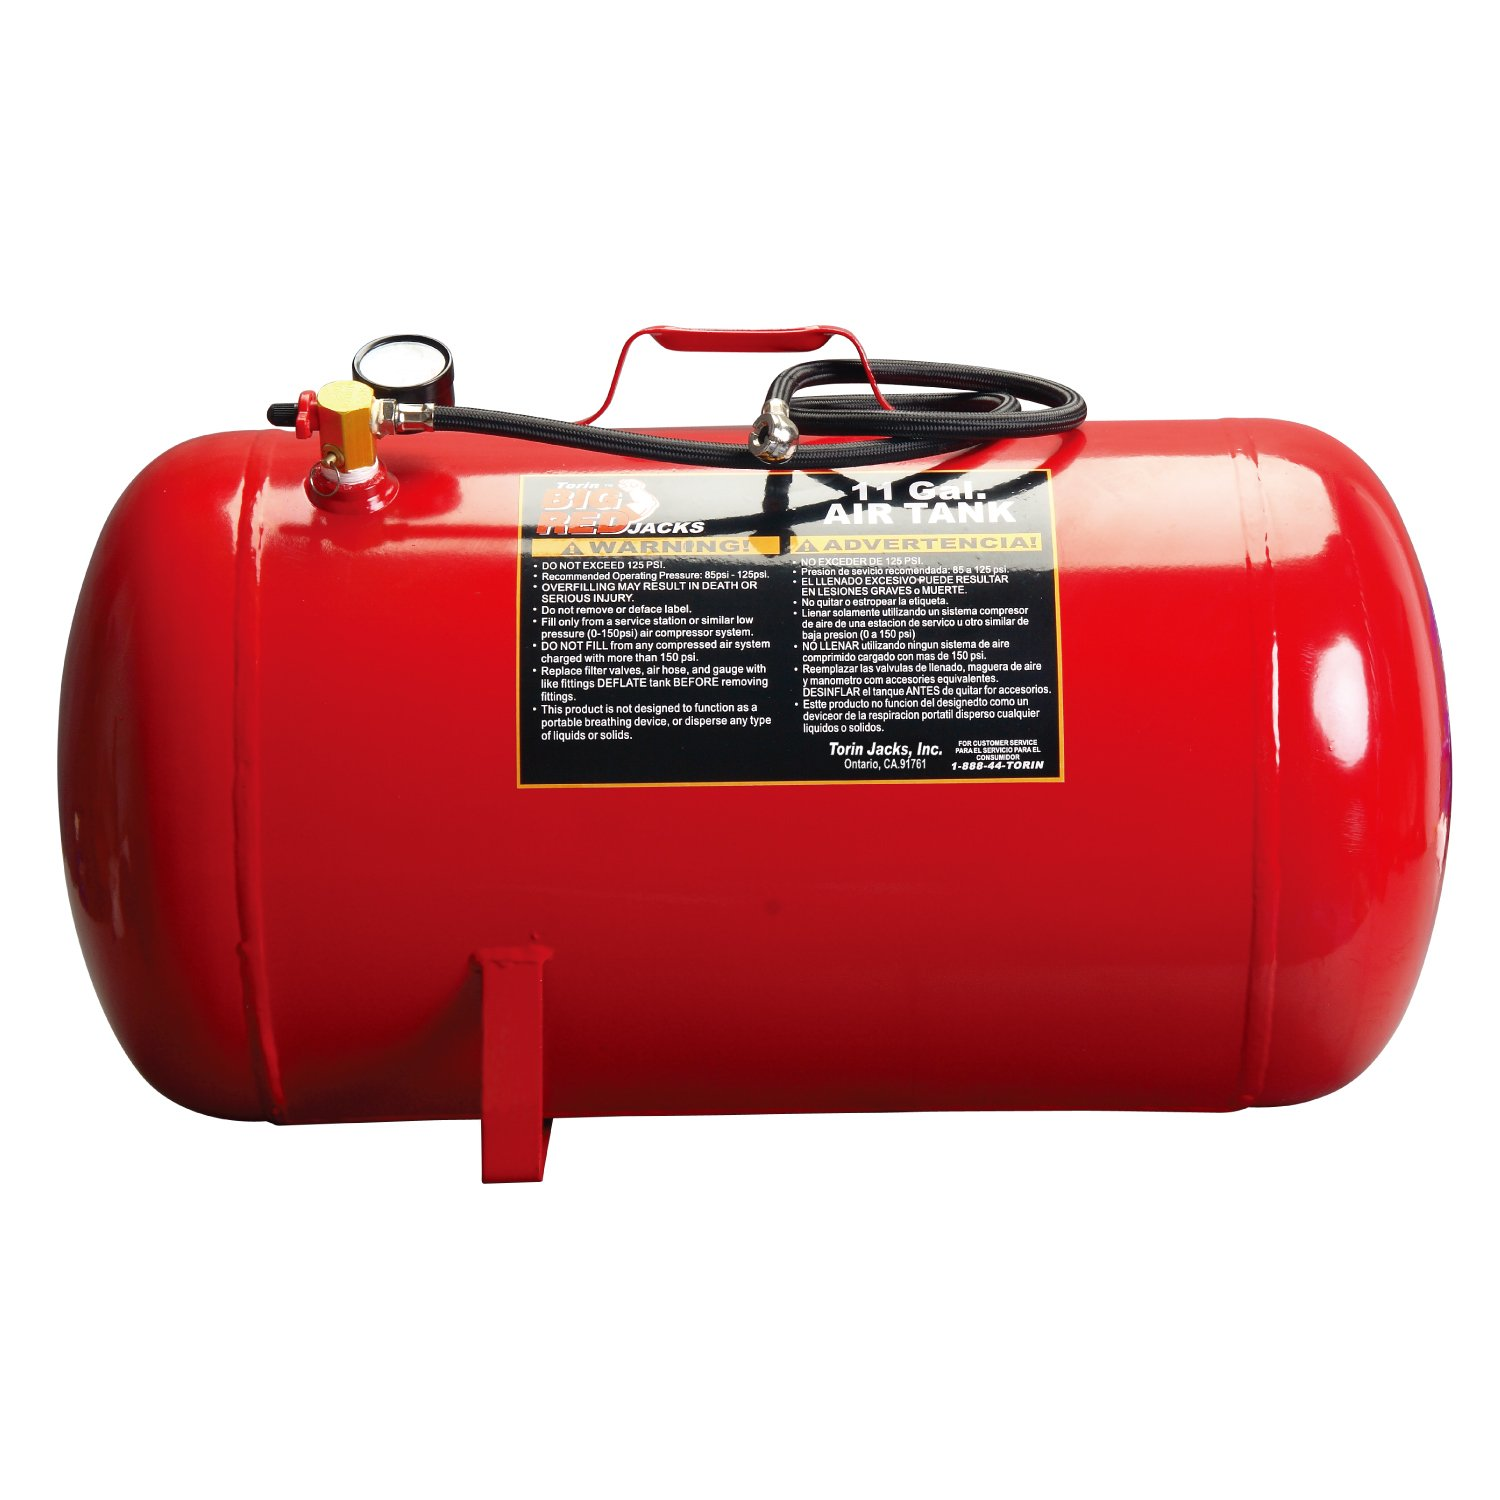 Torin Big Red Portable Horizontal Air Tank with 36 Hose, 7 Gallon Capacity T88007